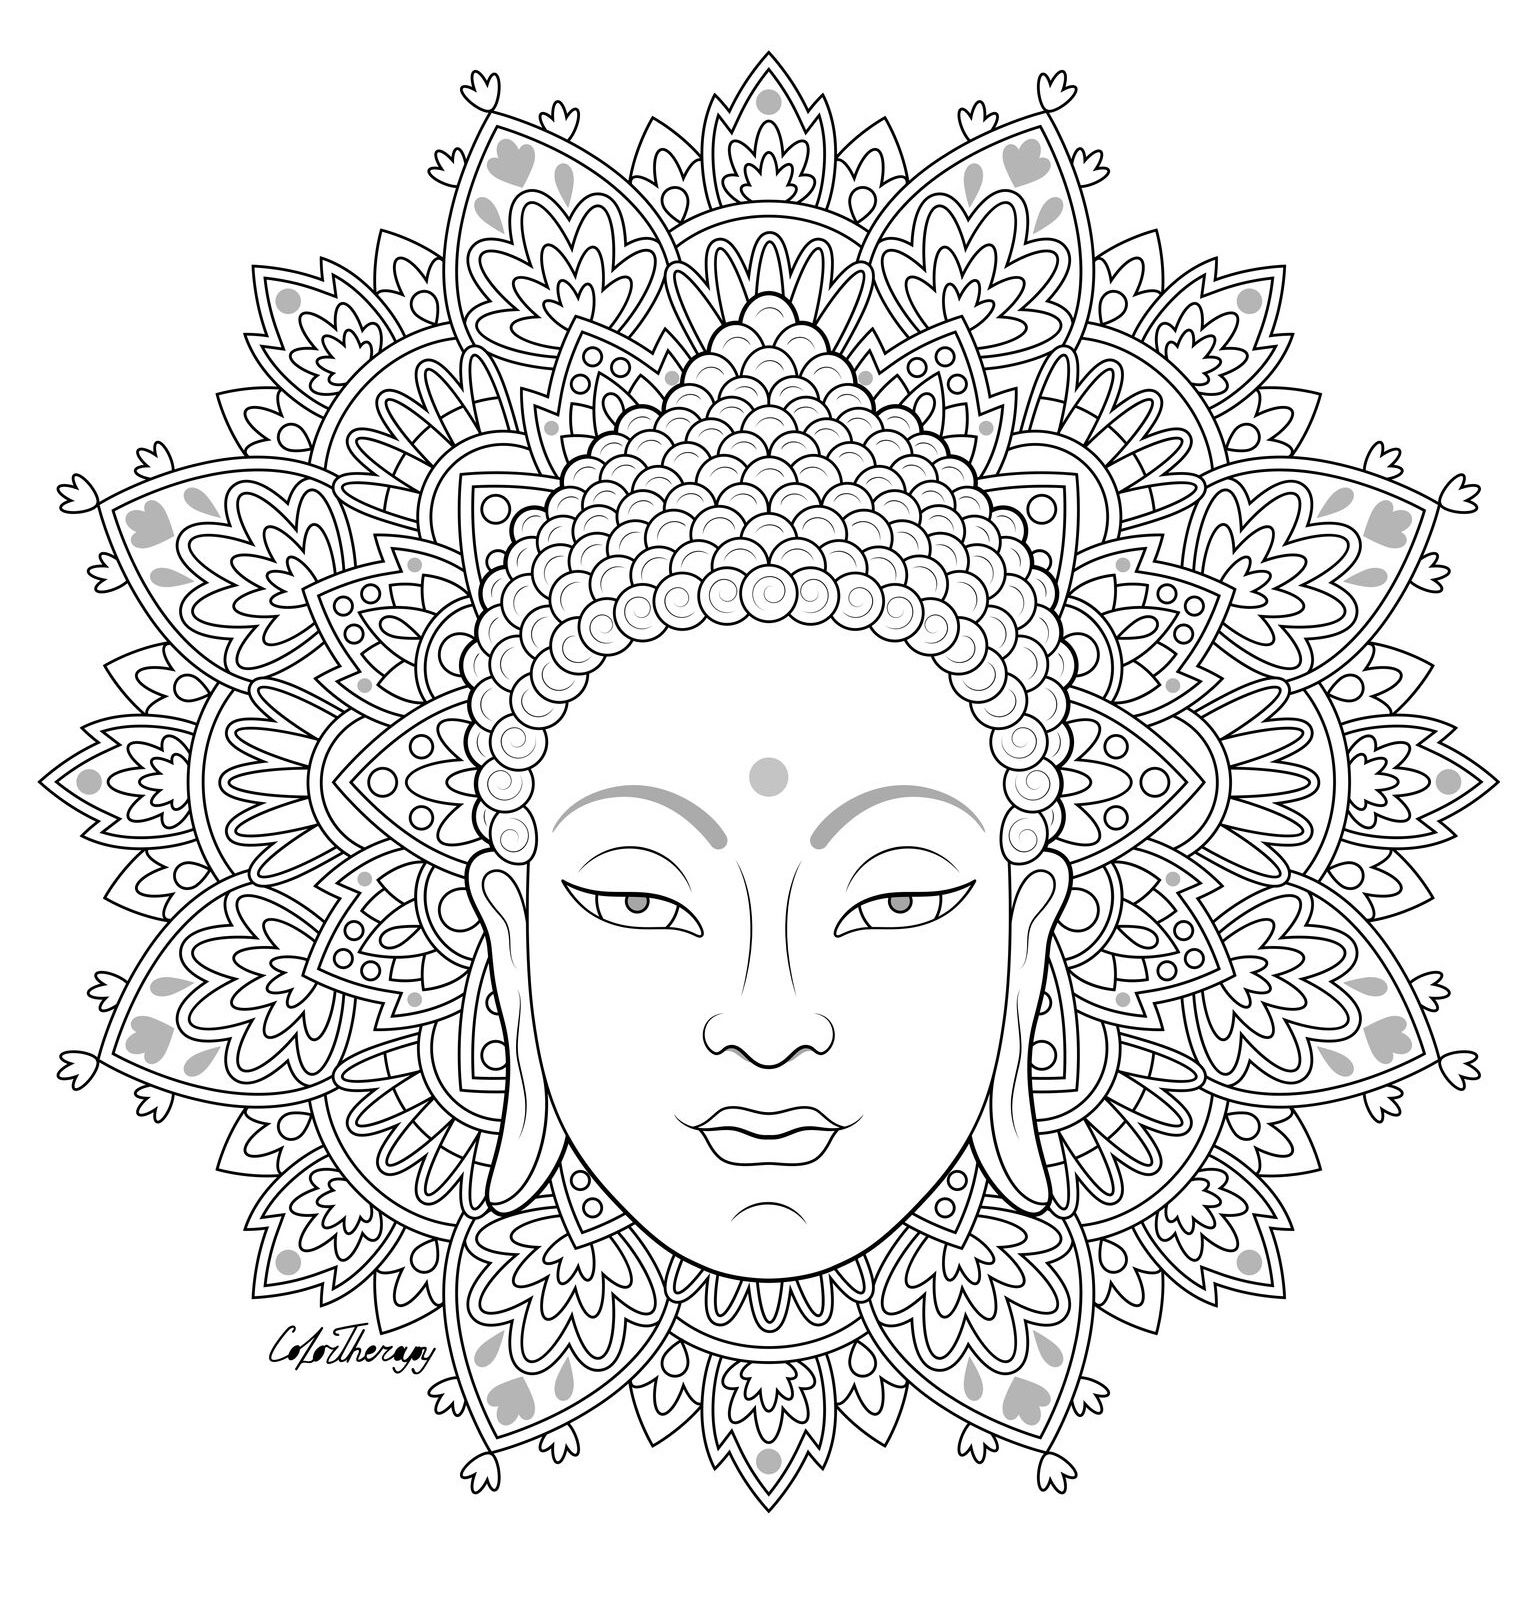 The Sneakpeek For The Next Gift Of The Day Tomorrow Do You Like This One Buddha Face Mandala Coloring Pages Buddhist Art Drawing Mandala Coloring